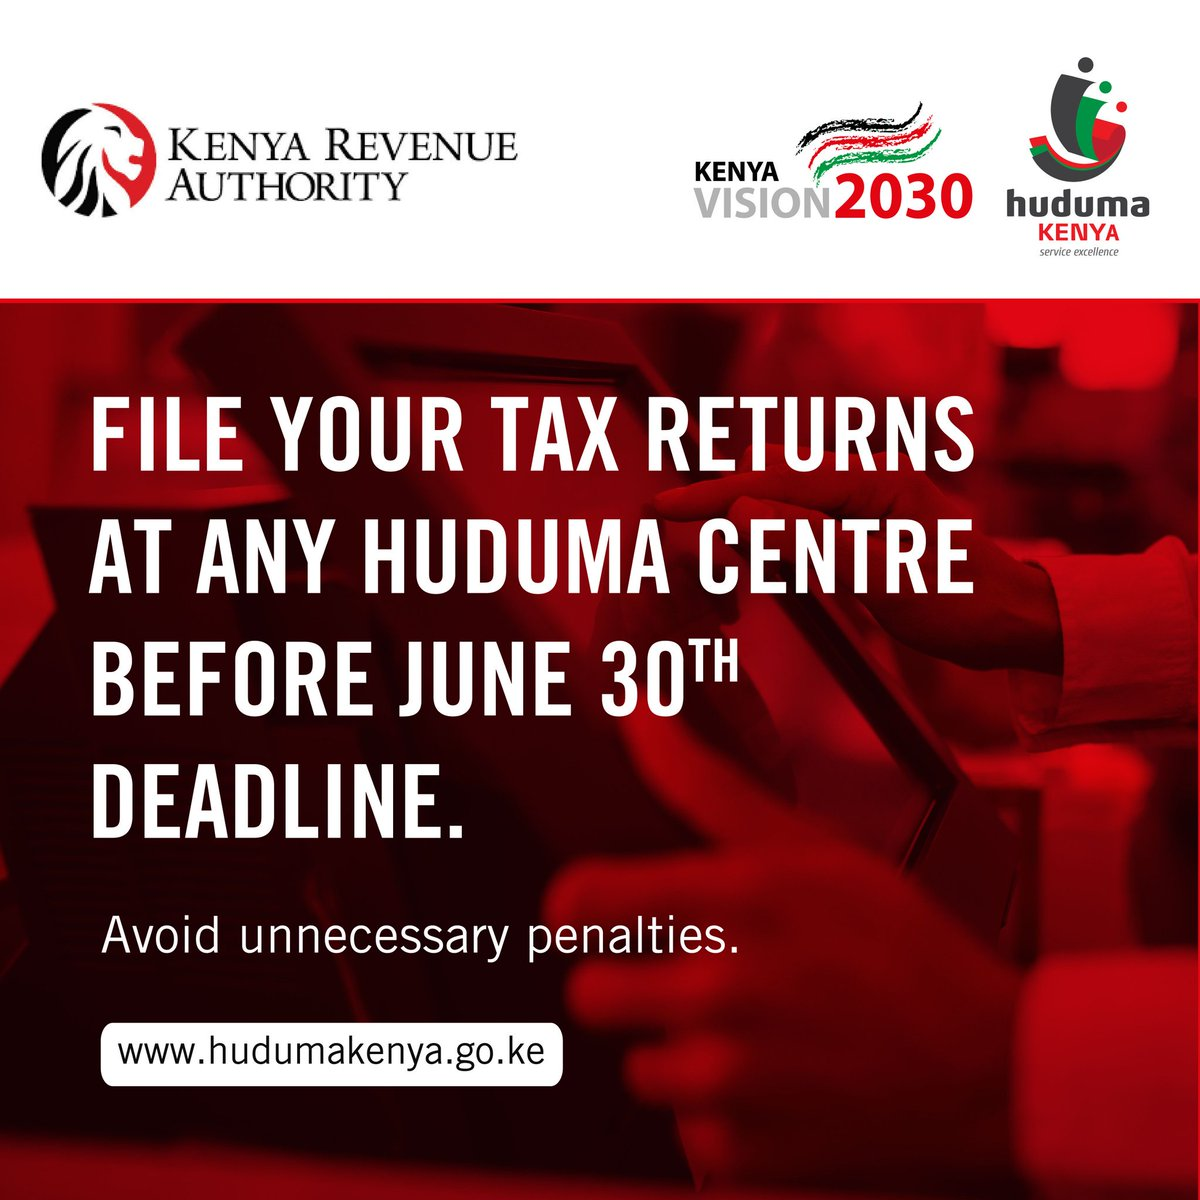 Kra care on twitter please note that you can do it yourself kra care on twitter please note that you can do it yourself kindly find a video on how to file your individual income tax return at solutioingenieria Image collections